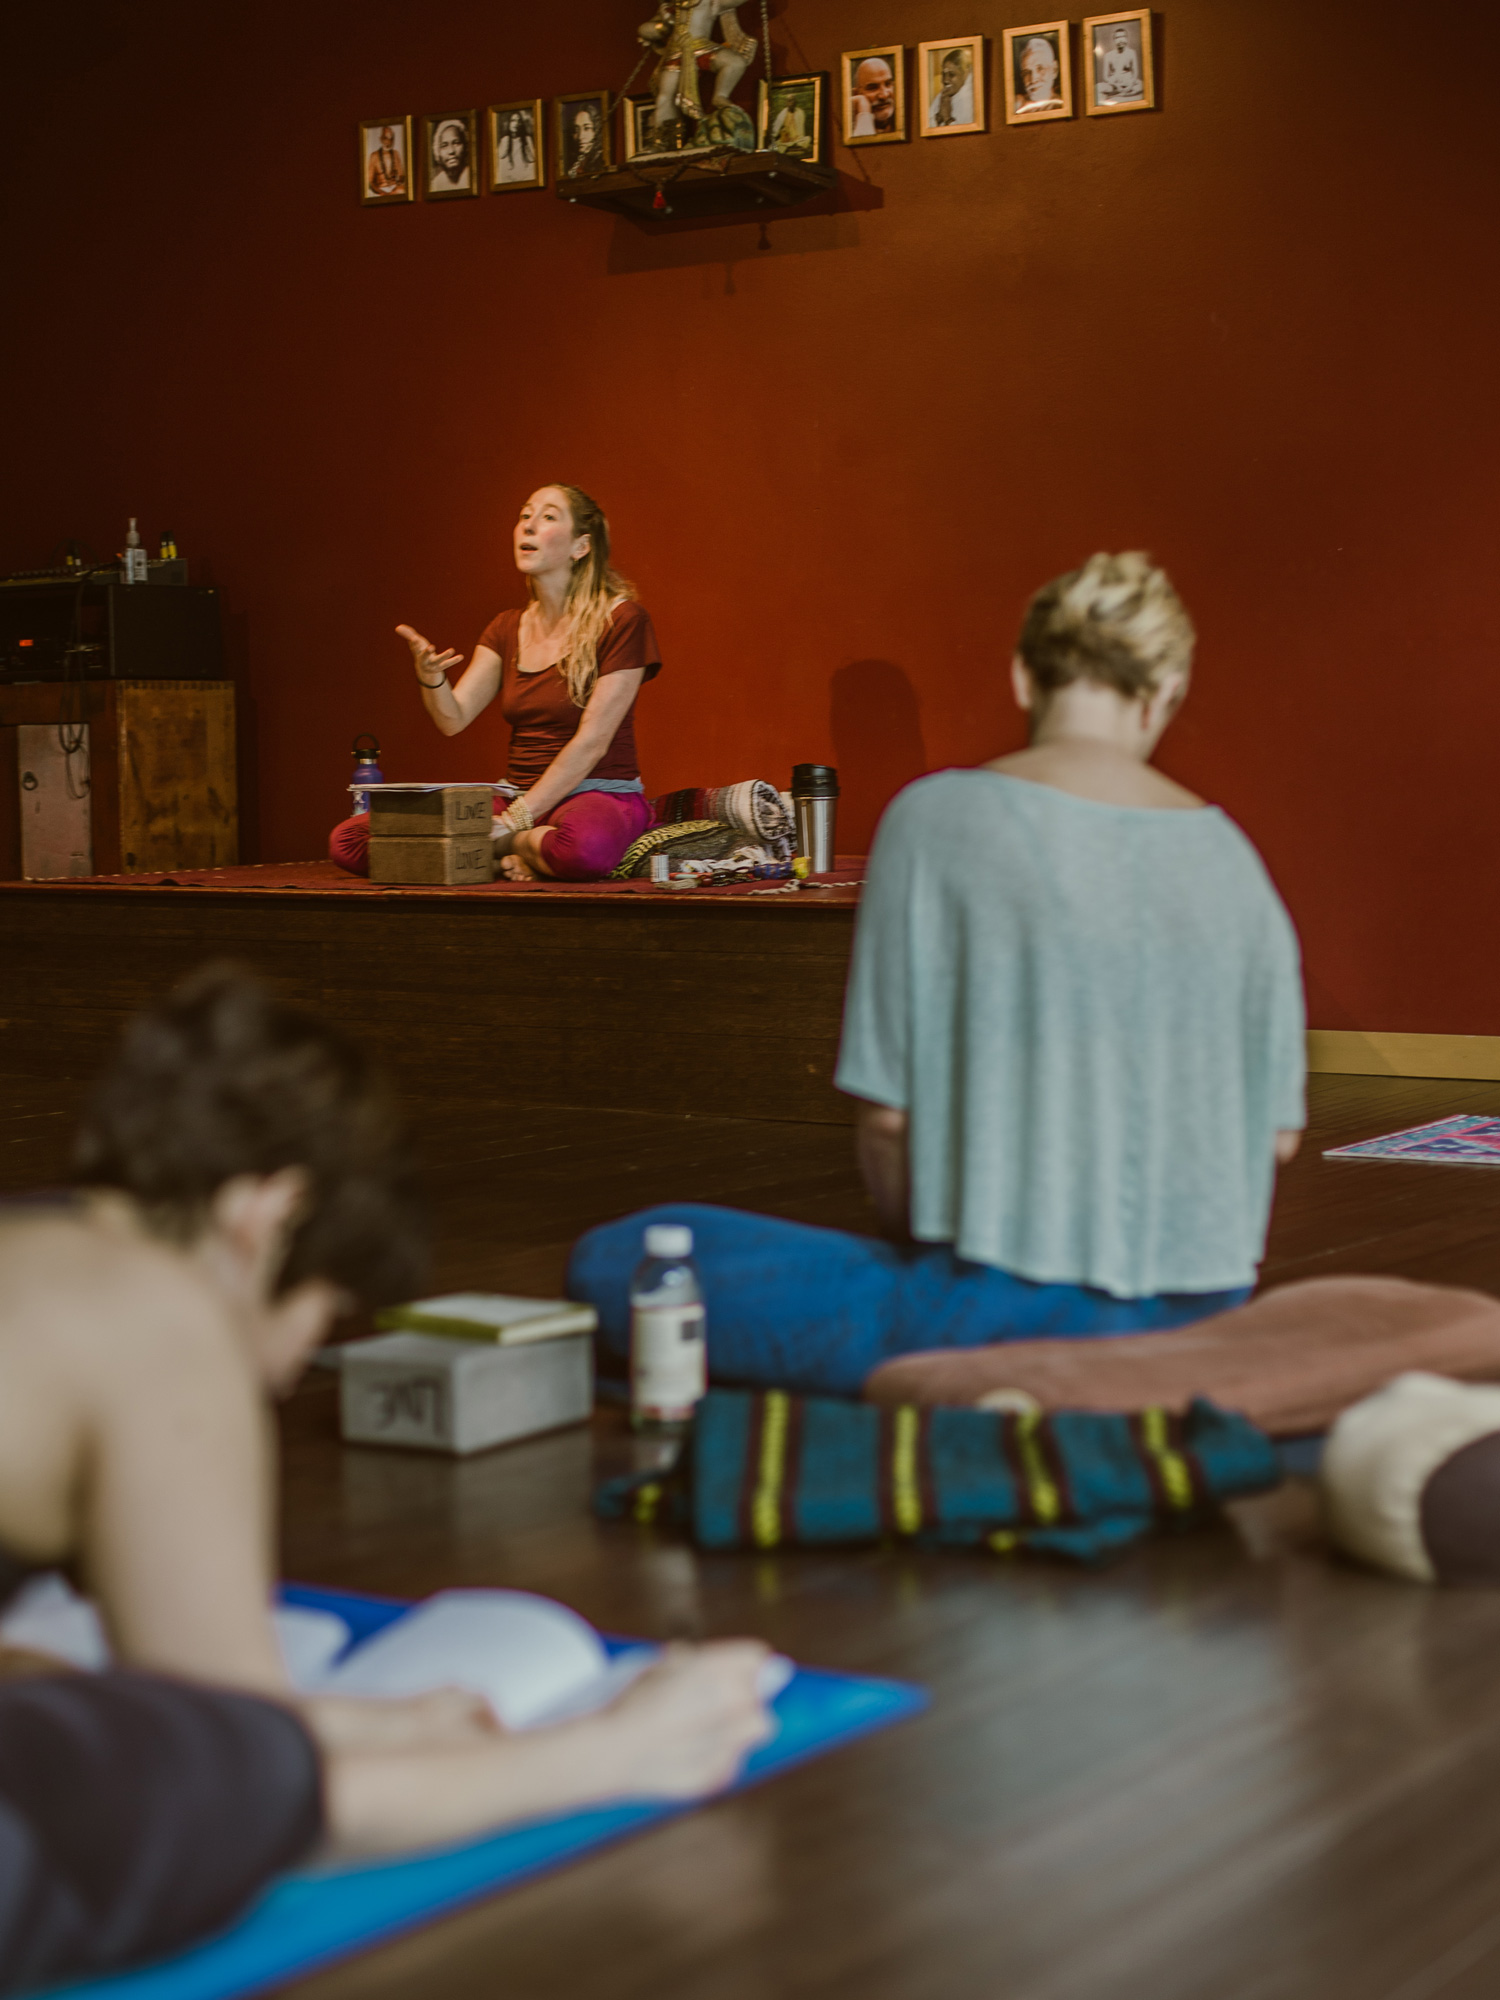 bhakti-2018-yin-yoga-teacher-training-20.jpg